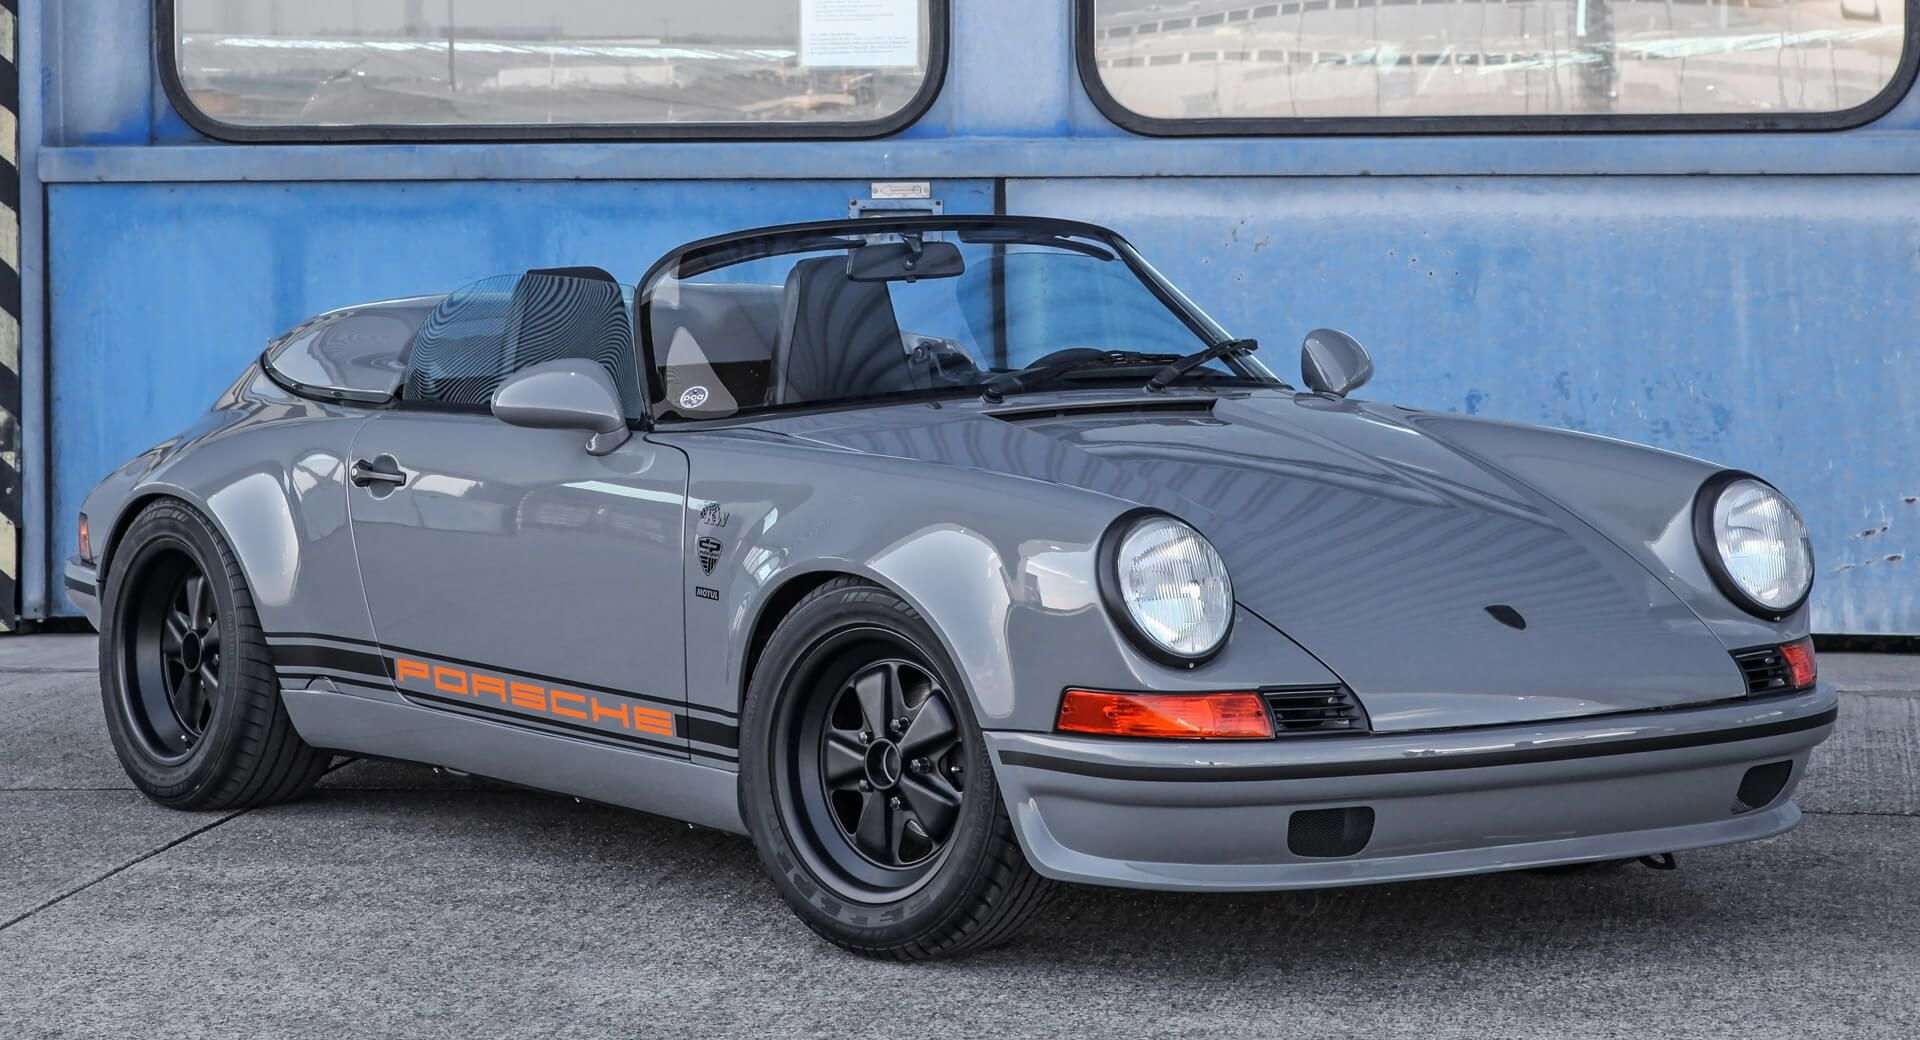 Retro Looking Porsche 911 Speedster Started Life As A 1989